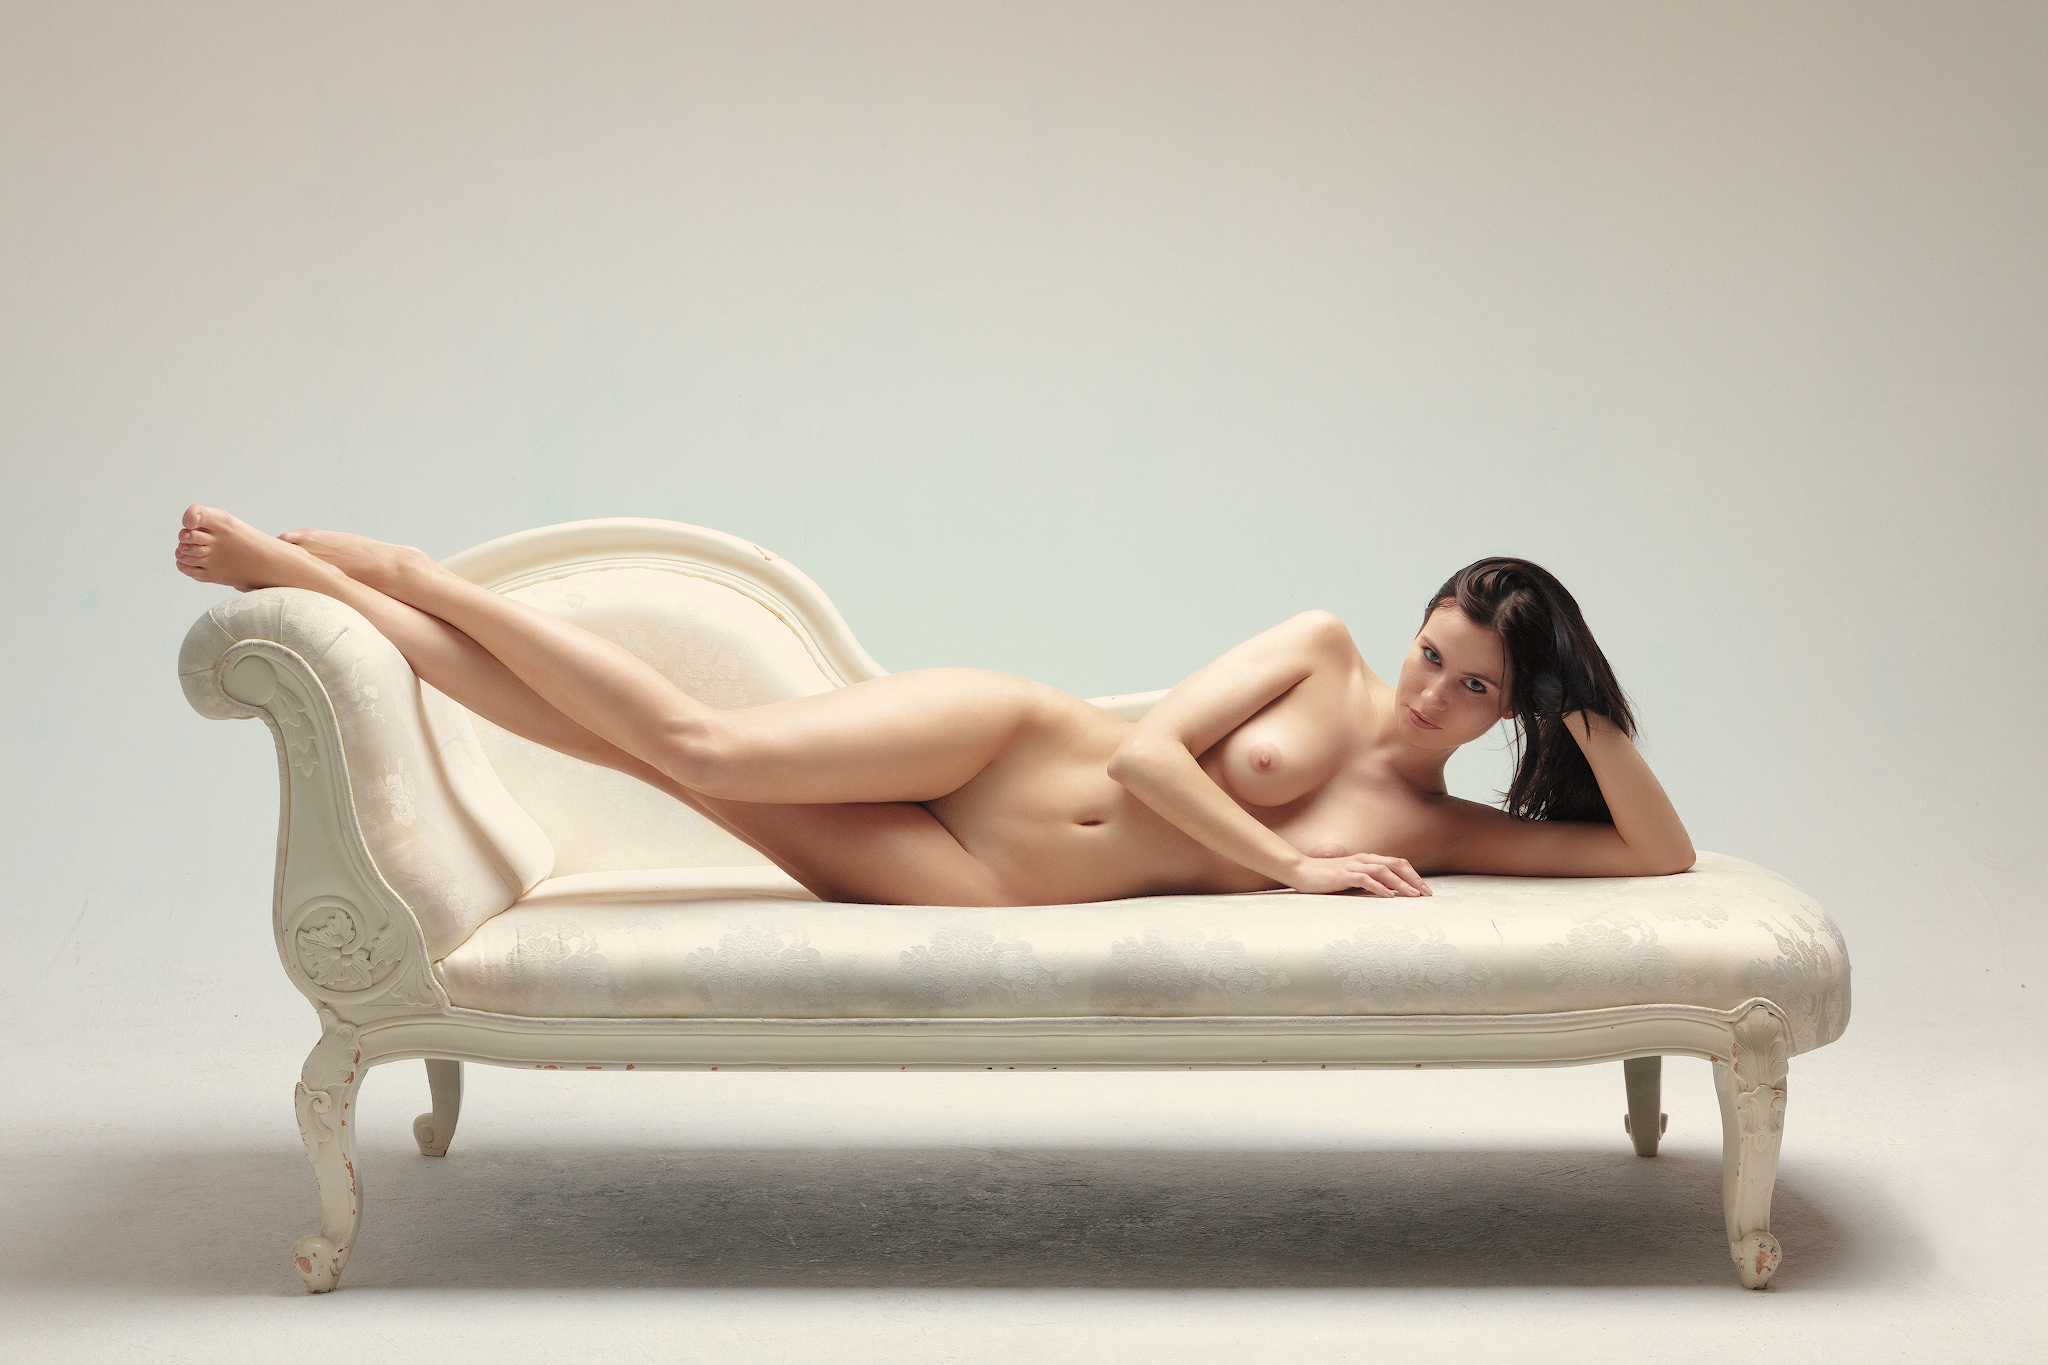 Free simple artistic nude pictures